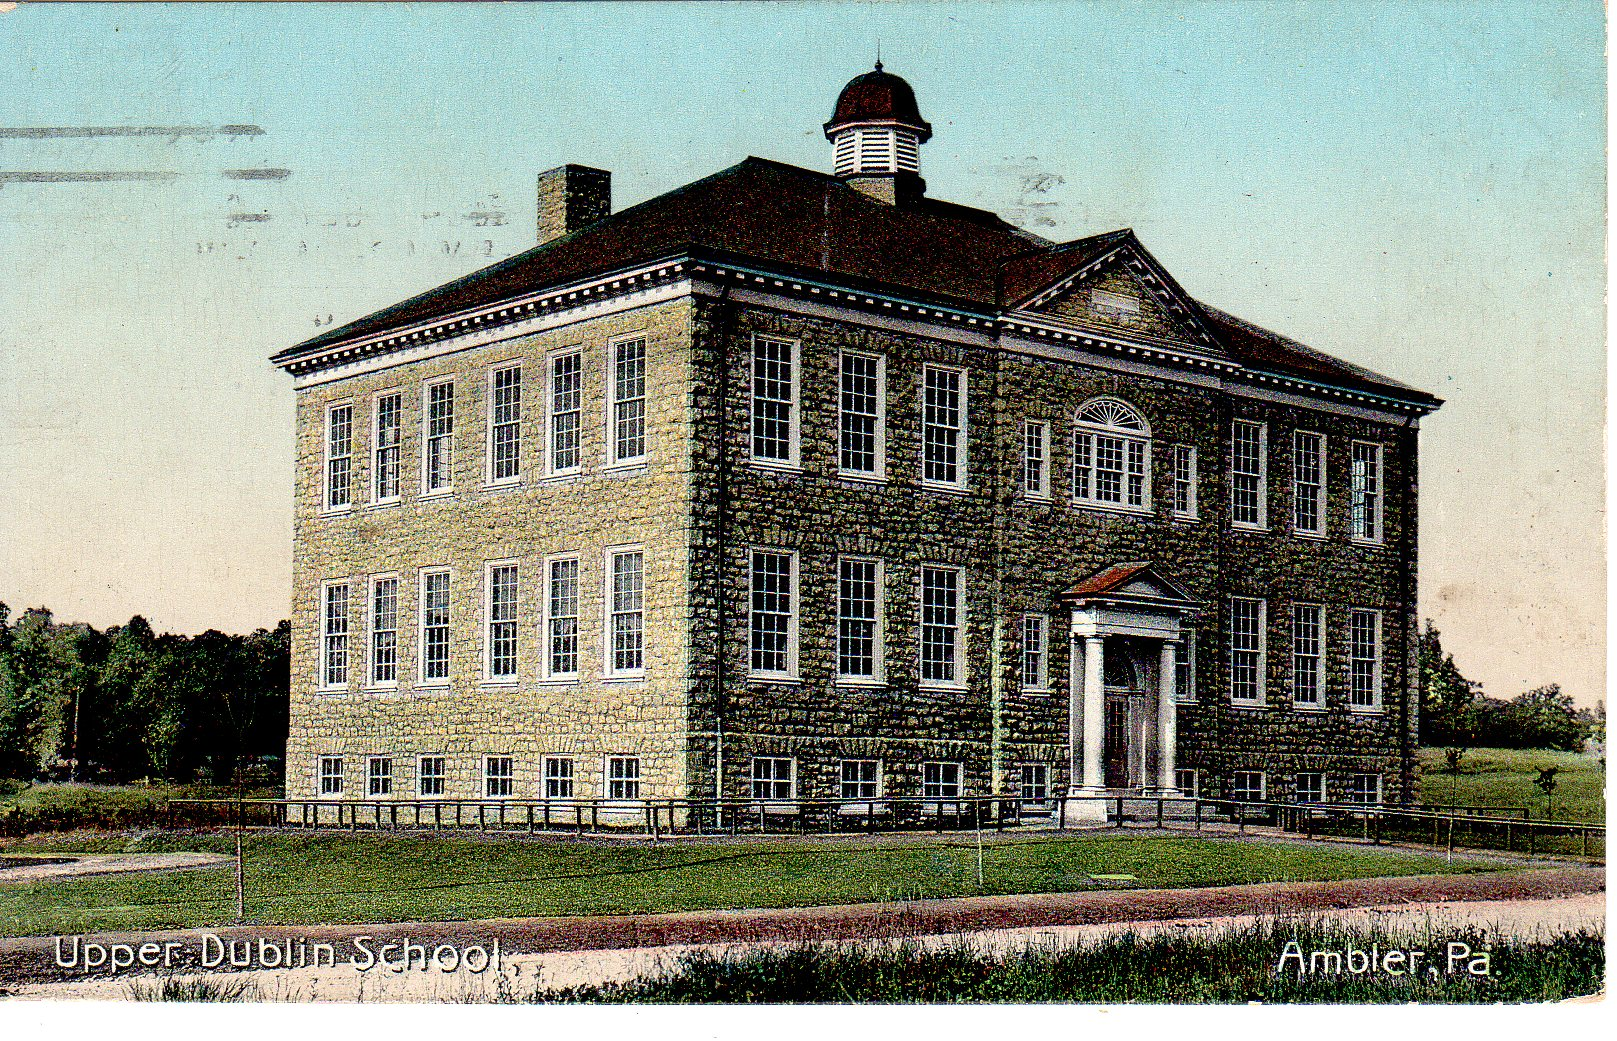 Post Card Collection (E Simon)_2682_41_Upper Dublin School, Ambler, Pa_27 Aug 1919